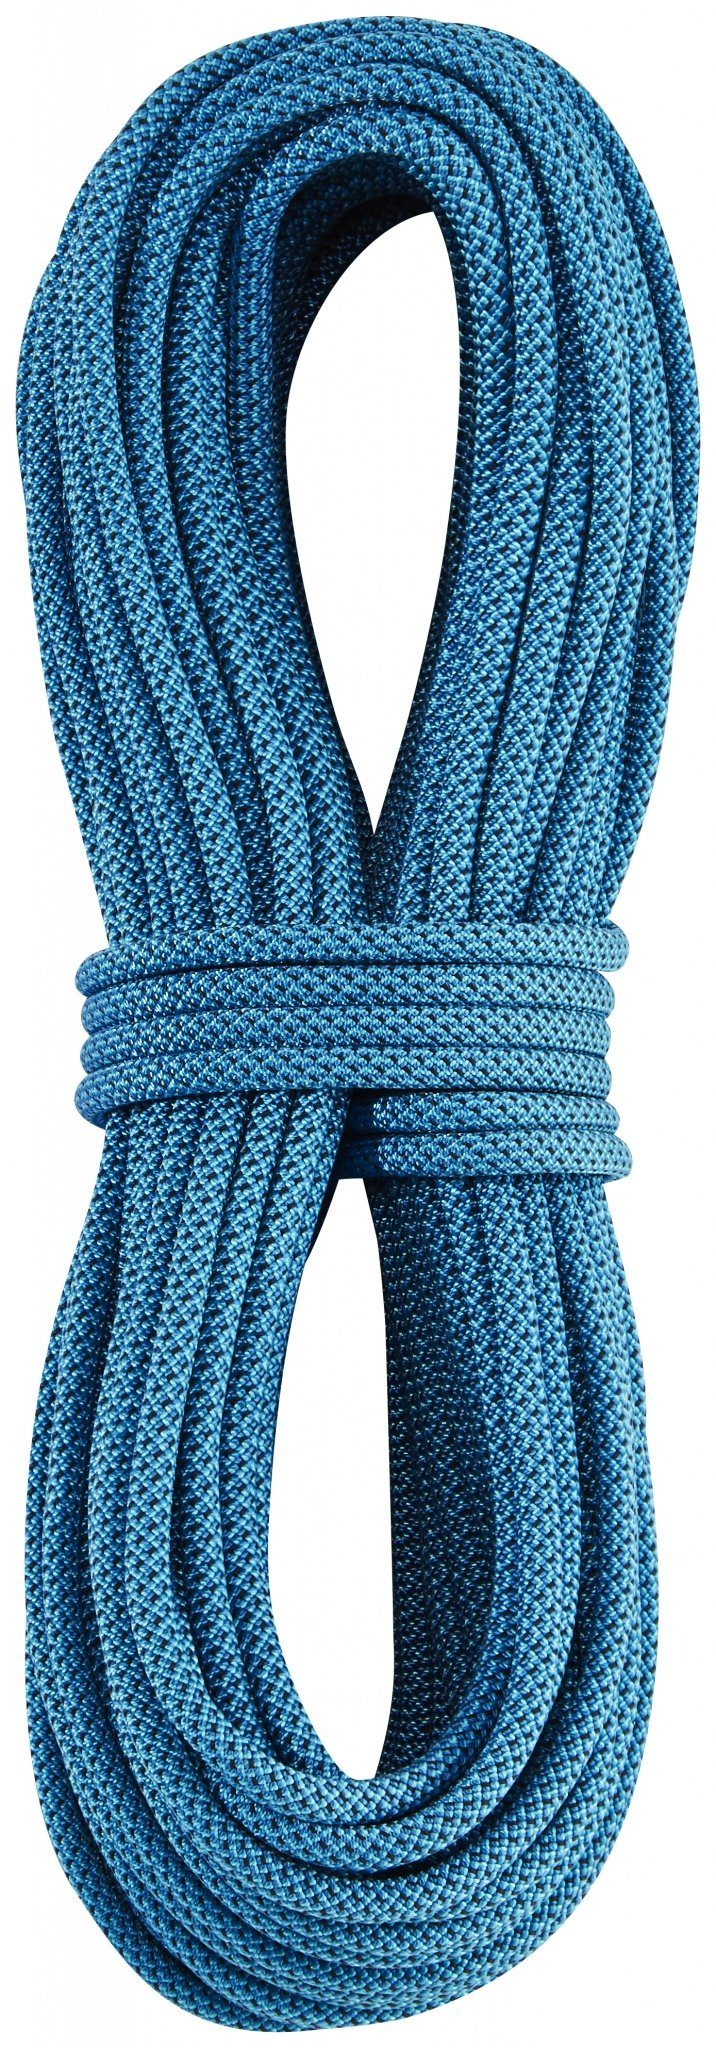 Edelrid Kletterseil »Tower Rope 10,5mm 30m«